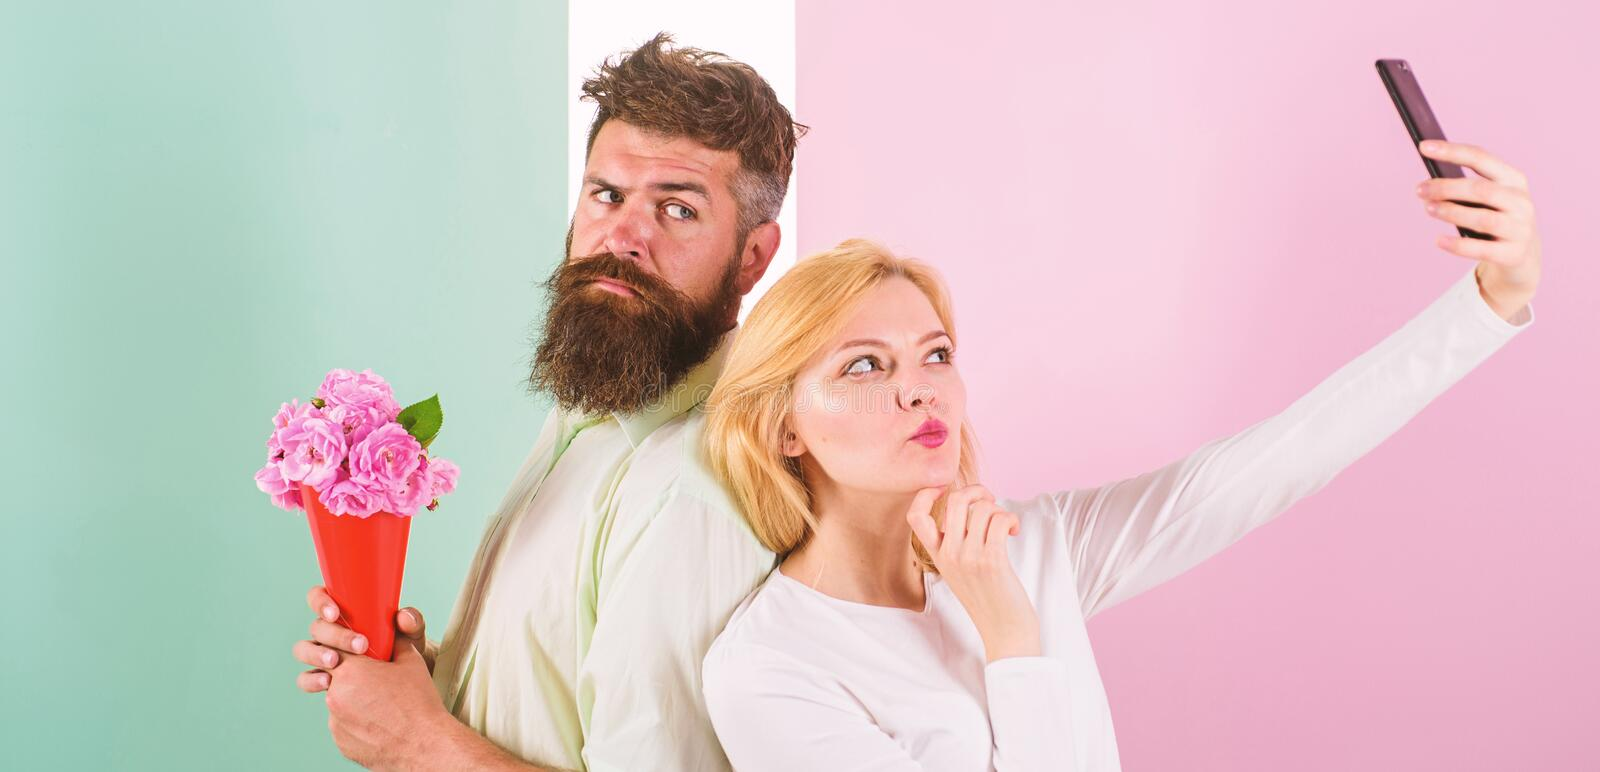 Couple in love bouquet dating celebrate anniversary relations. Sharing happy selfie. Woman capturing happy moment. Boyfriend bring bouquet flowers. Capturing stock photography